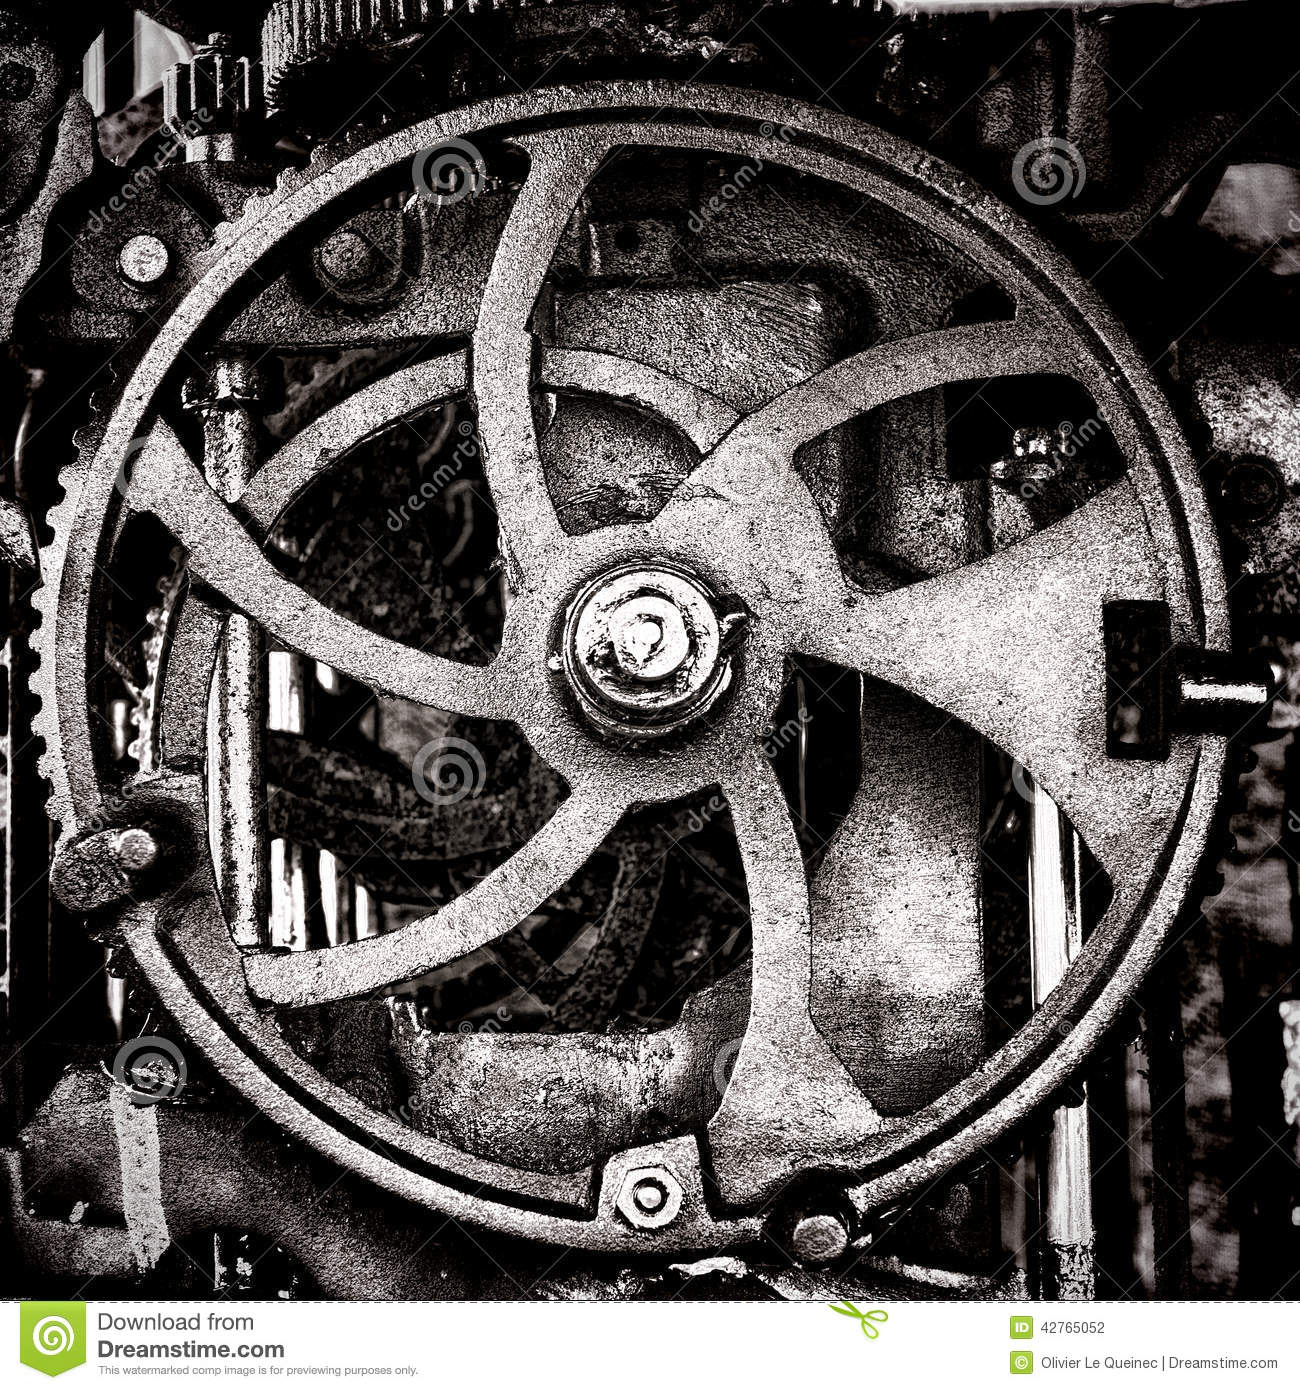 Grunge Industrial Antique Machine Old Cog Wheel Stock